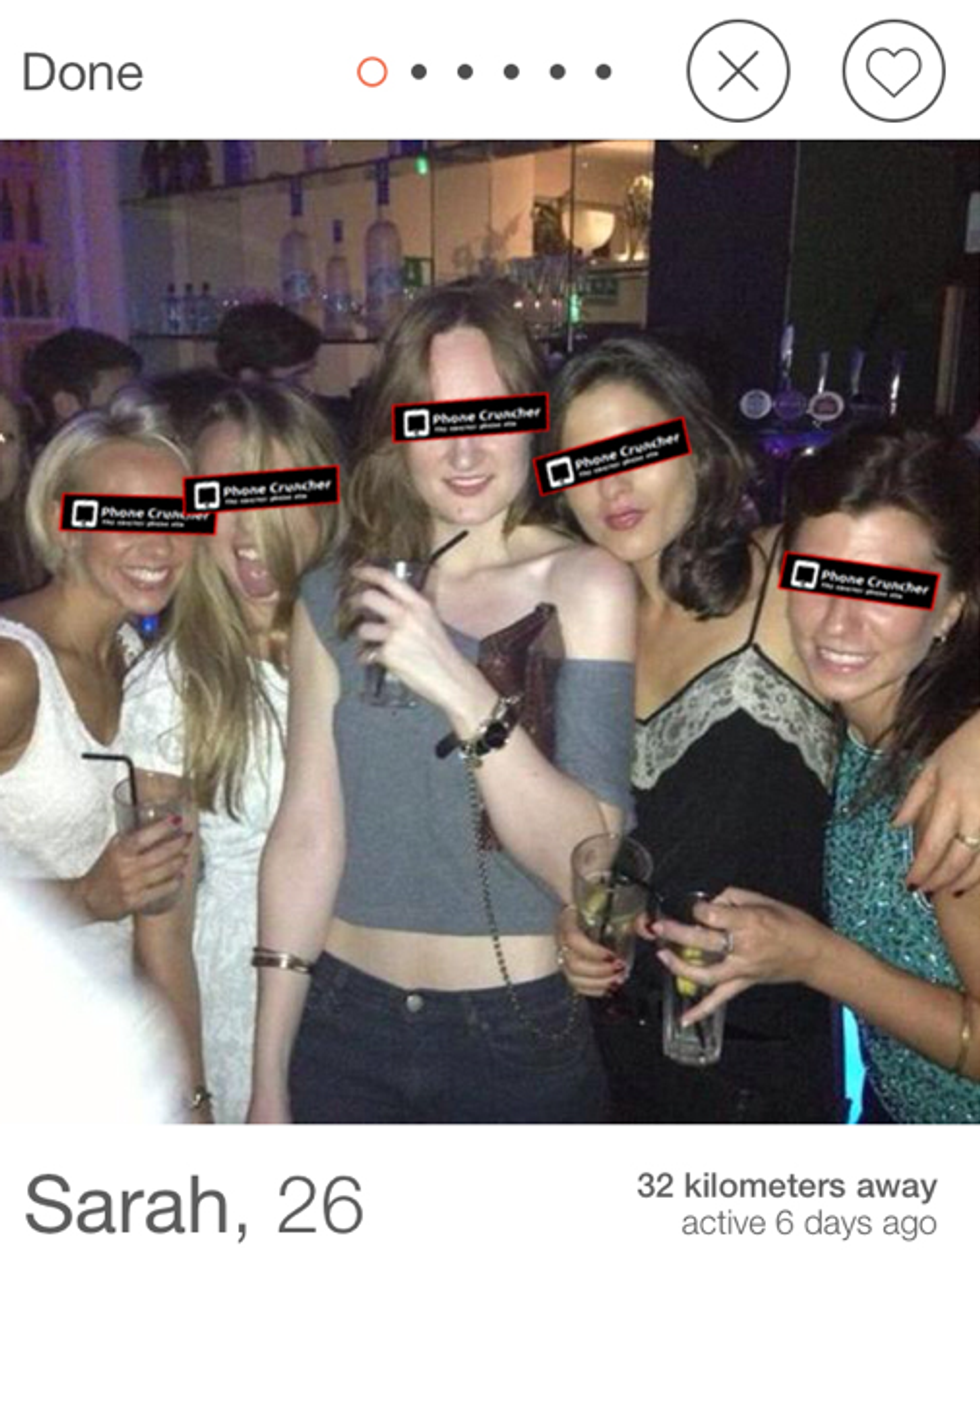 8 Tinder Profiles We Never Wanna See Again